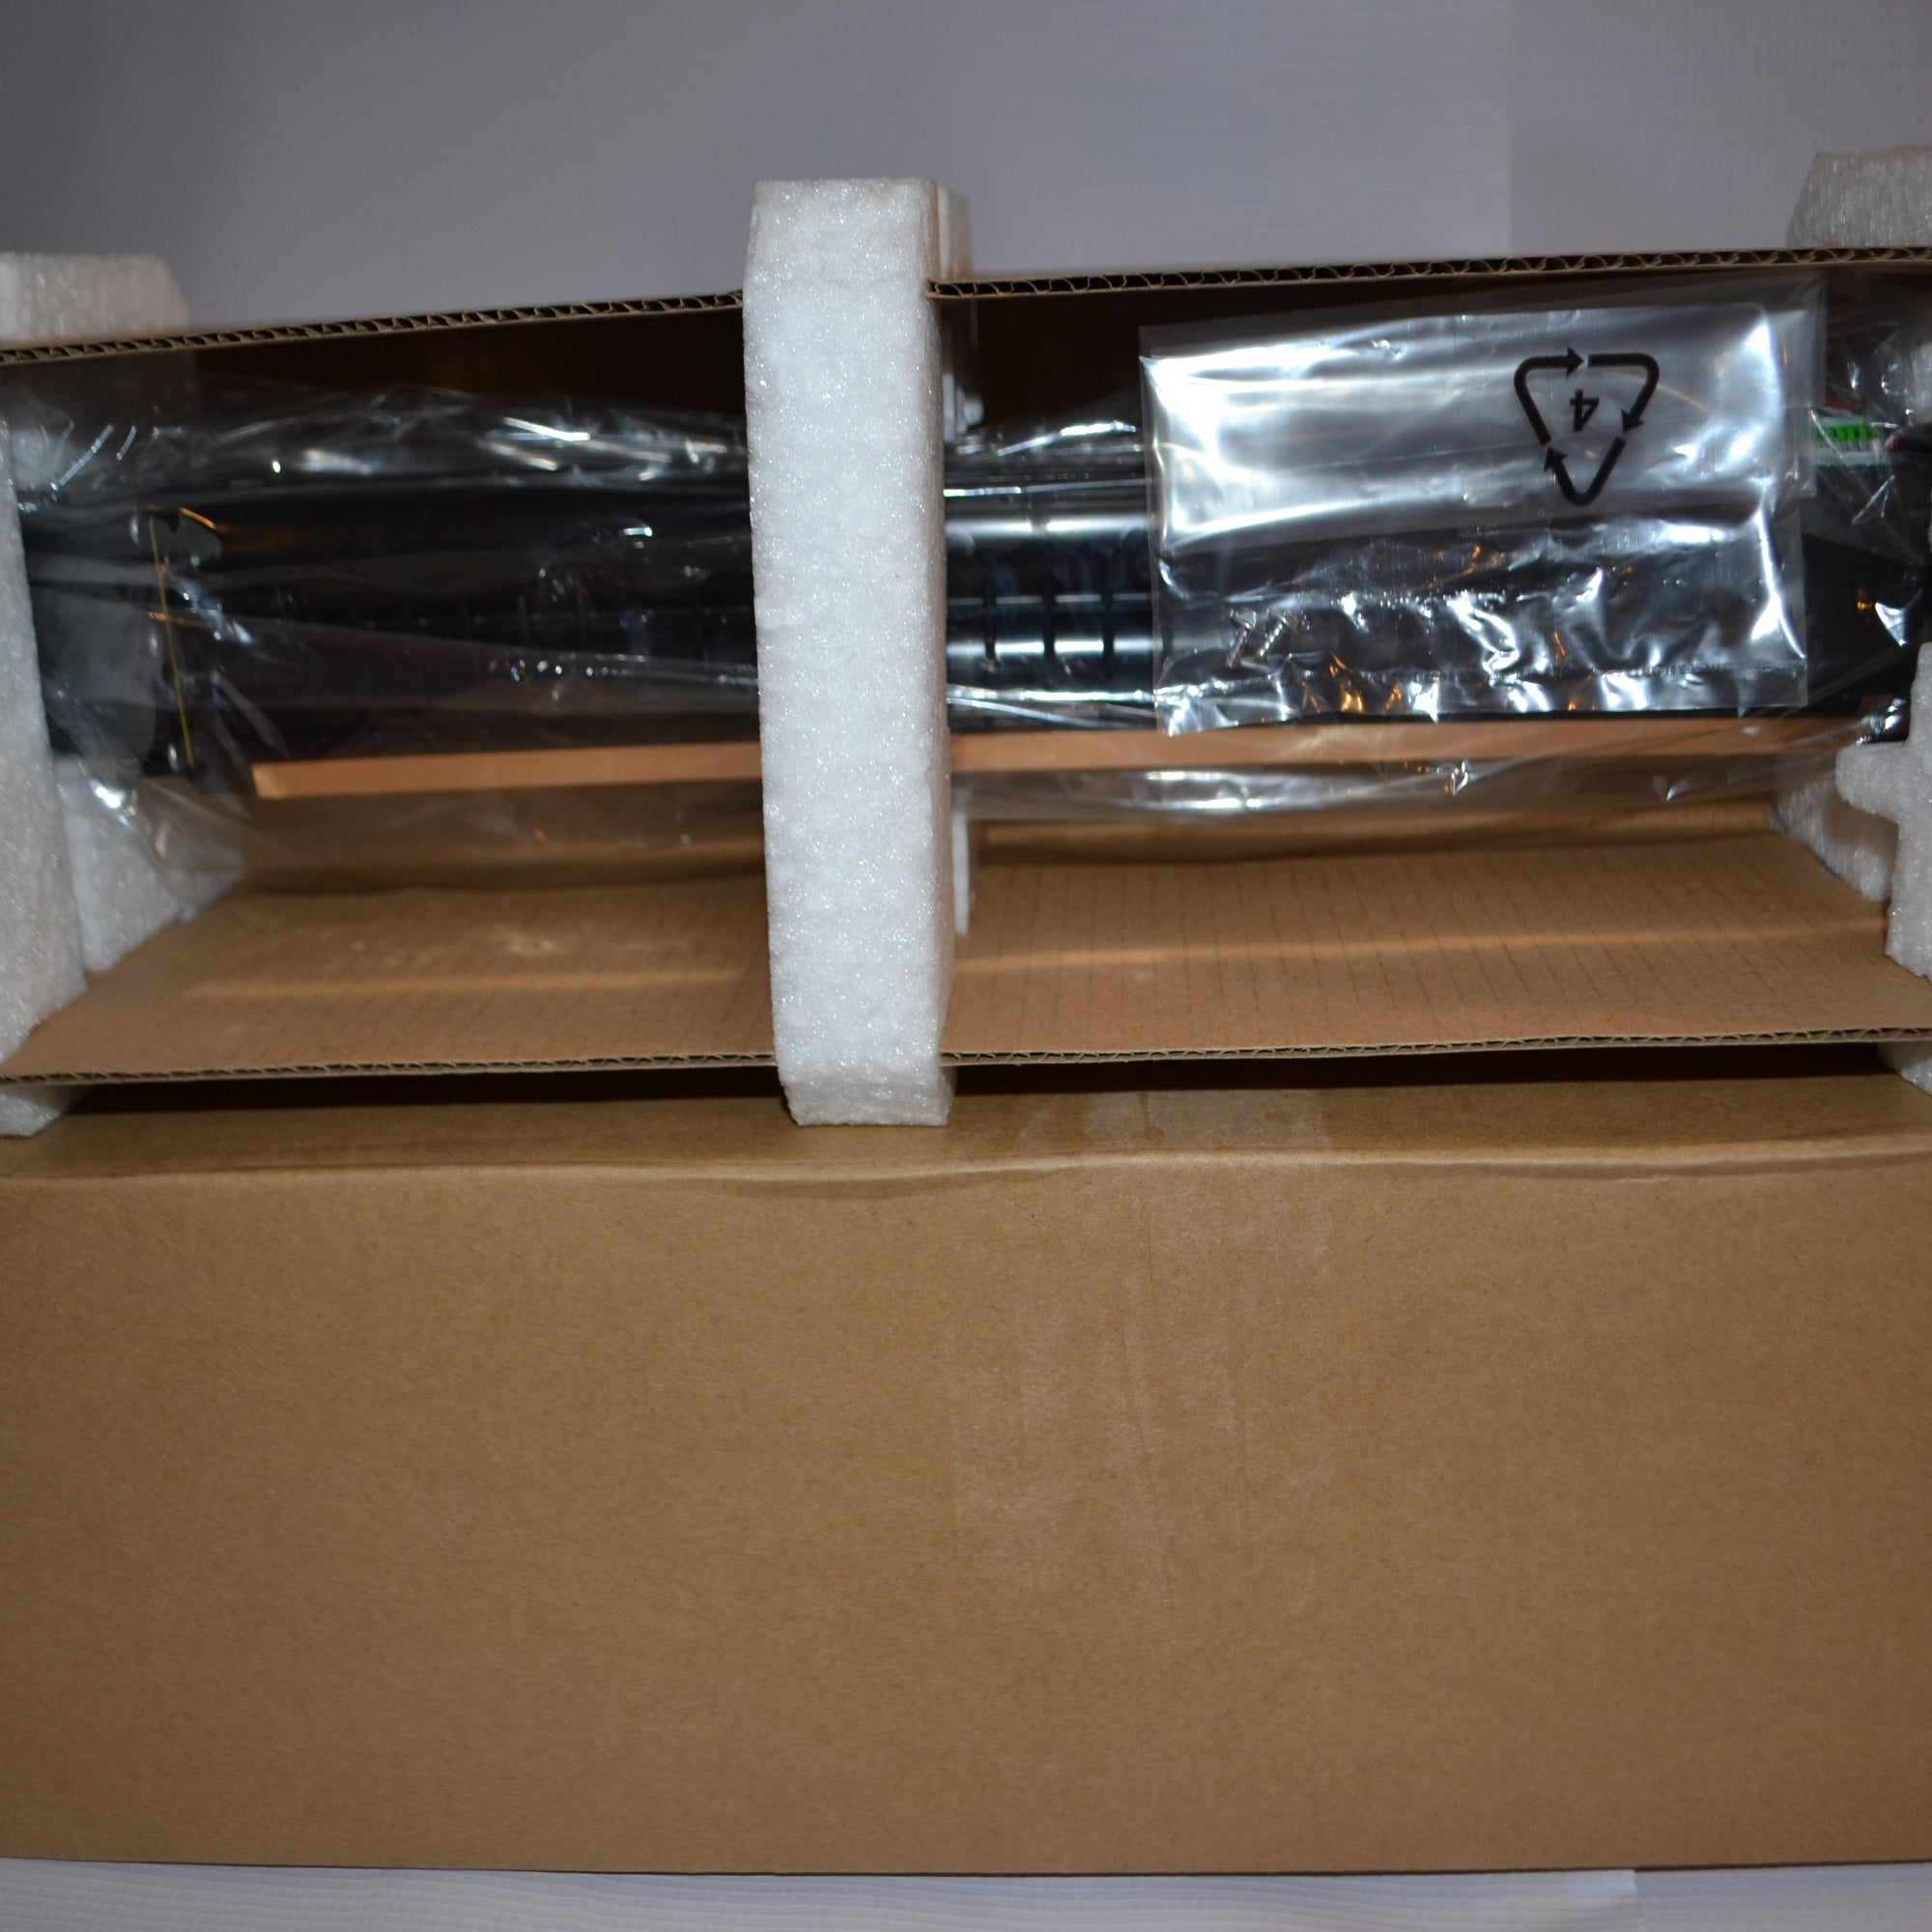 OEM Xerox DC240 Color CMY Developer Assembly Unit 604K86350 - SOP-TECHNOLOGIES, INC.